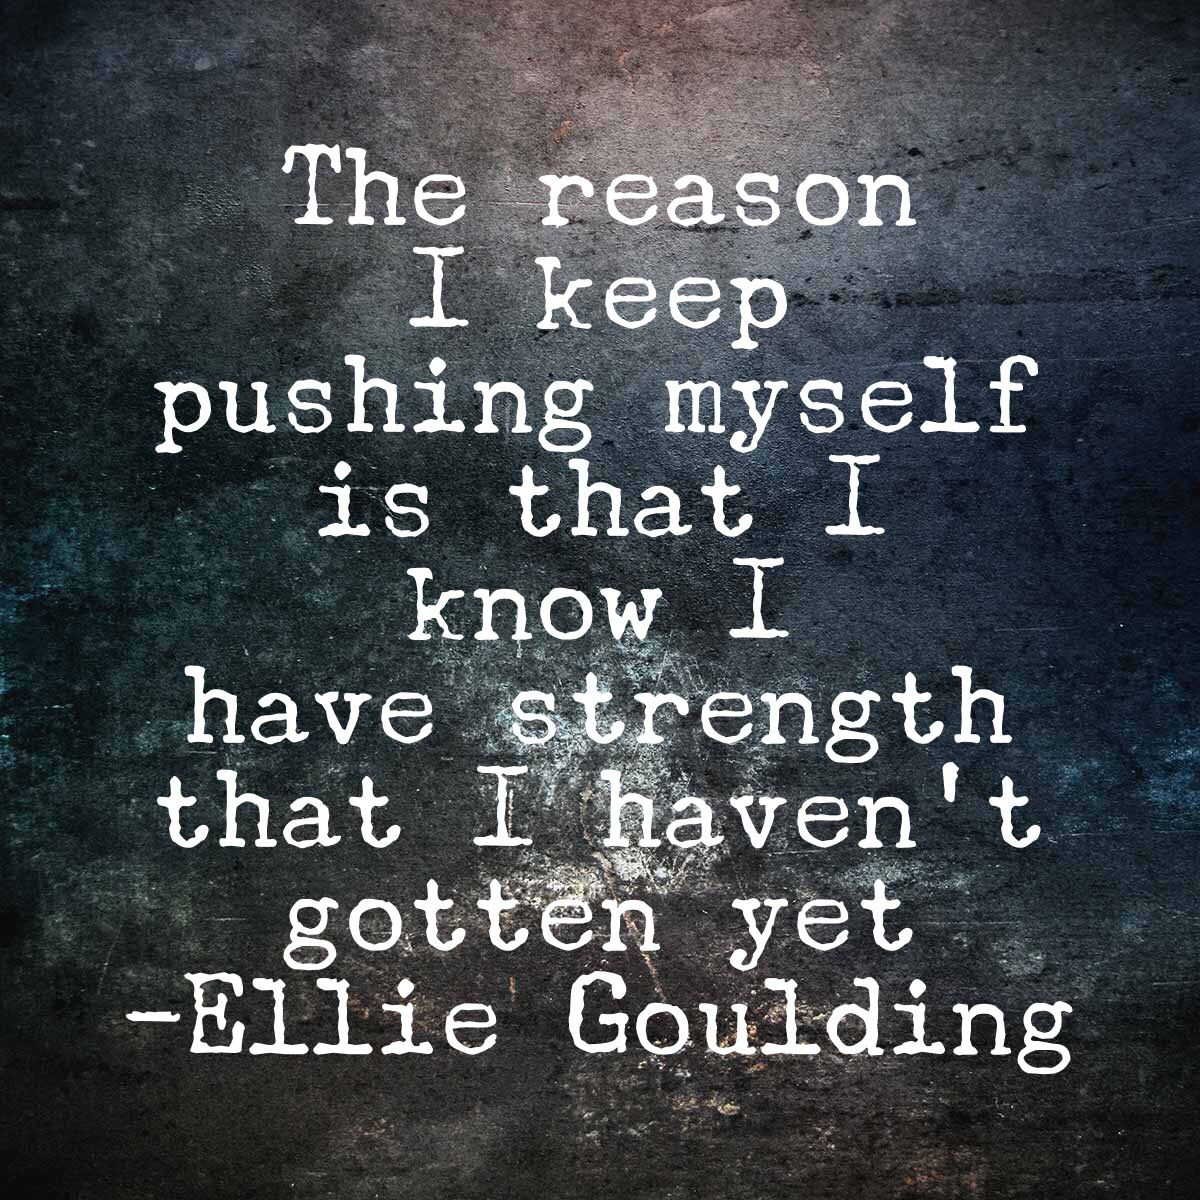 Well Said Ellie Goulding Thankful For Friends